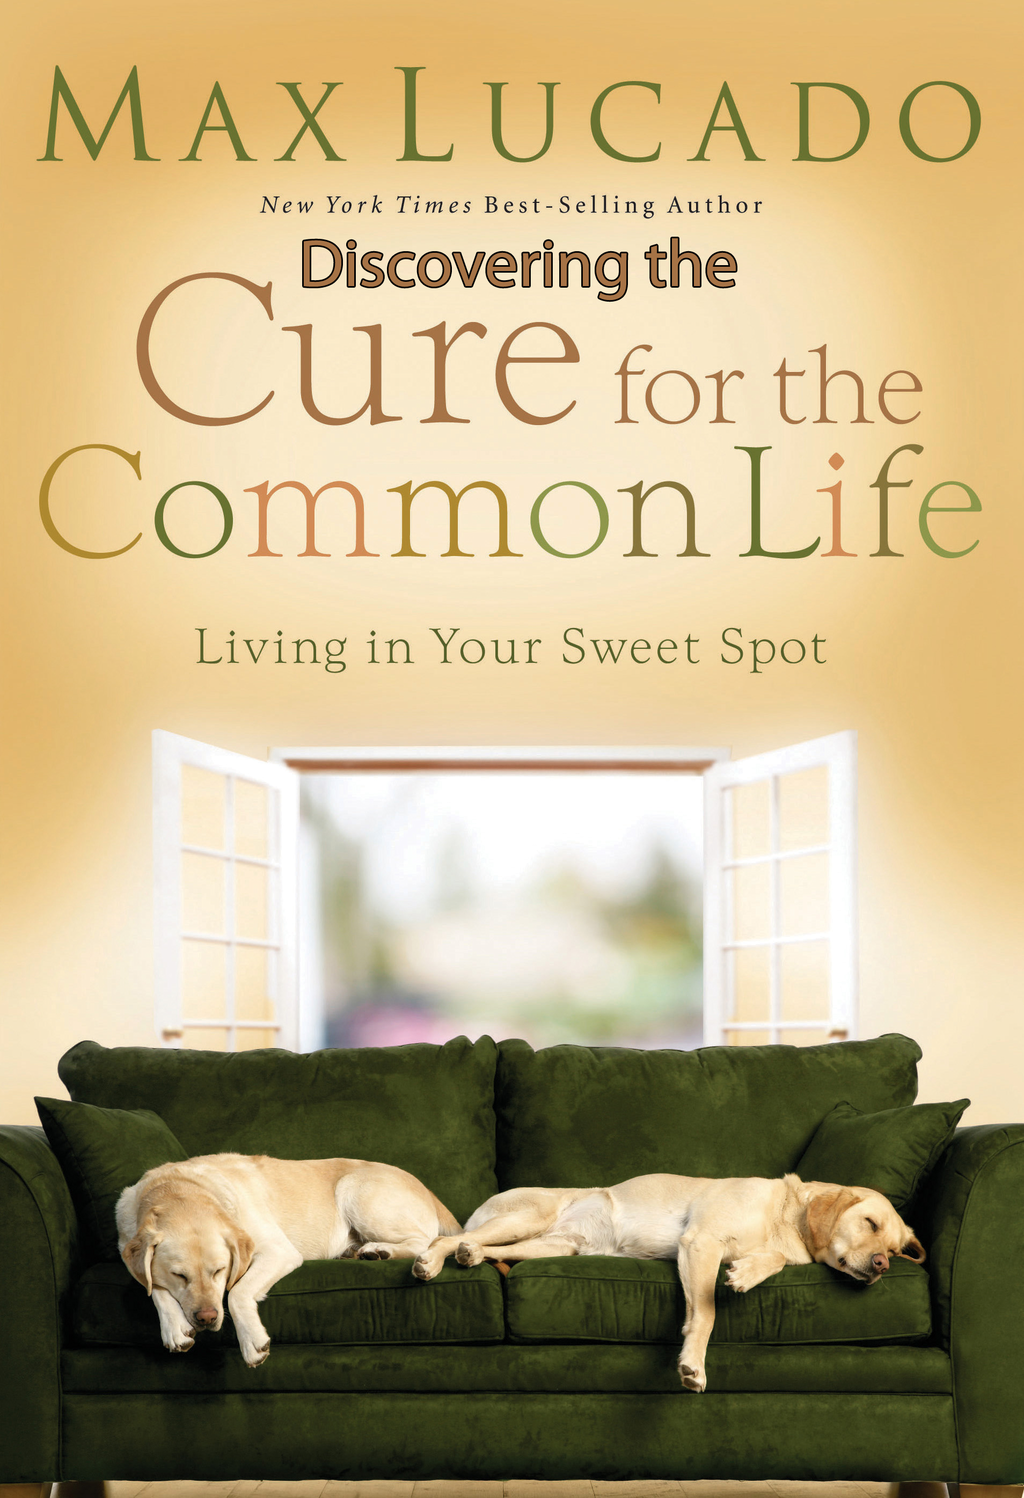 Discovering the Cure for the Common Life (Excerpt) Living in Your Sweet Spot